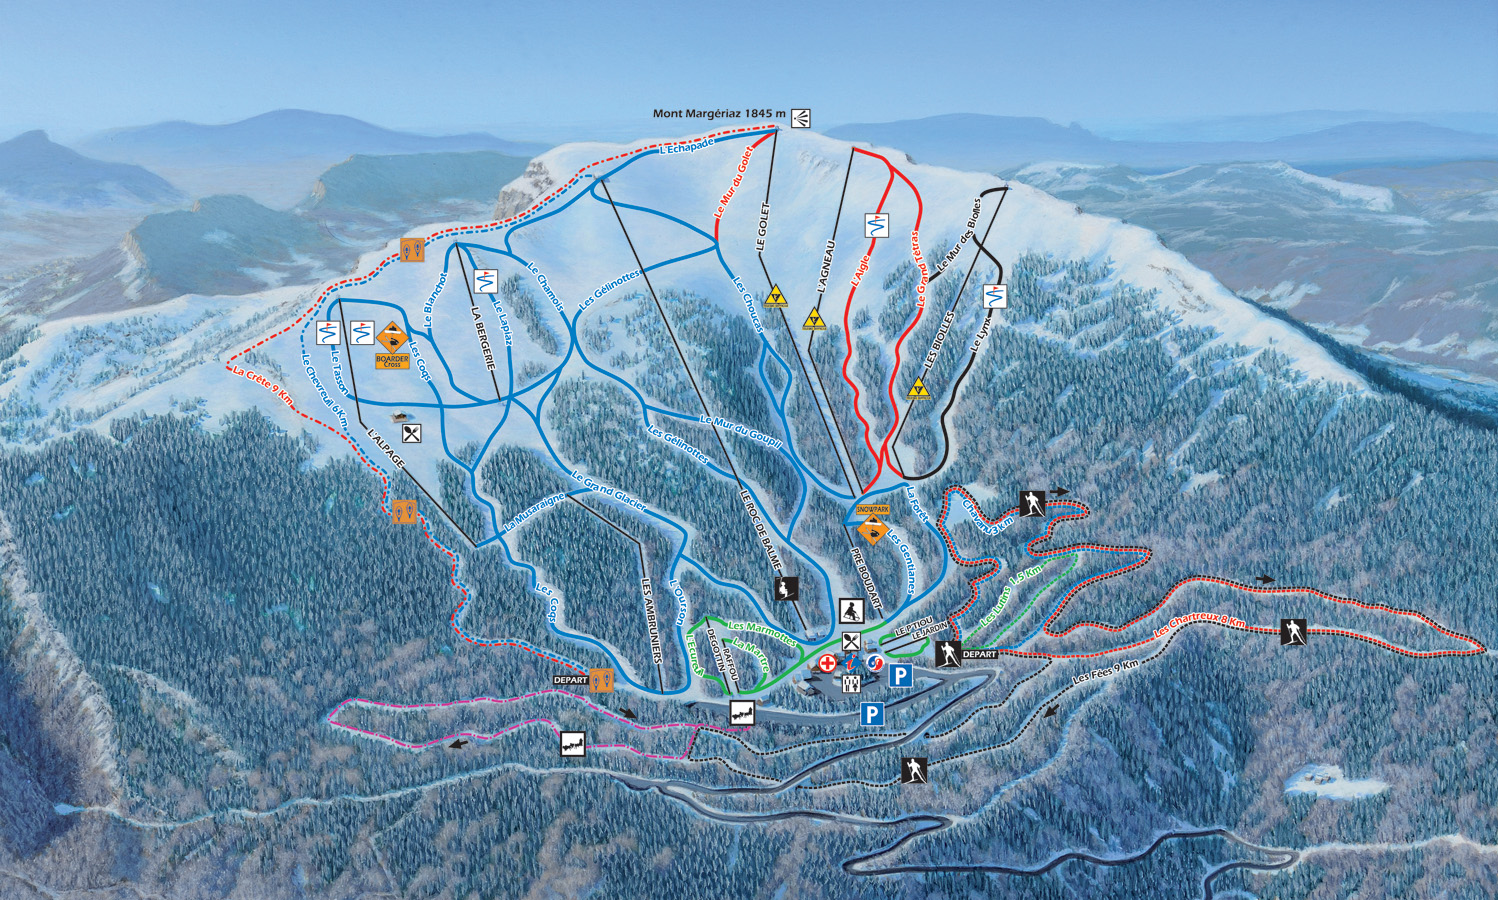 LES AILLONS MAP 23 open pistes 10 open ski lifts WinterSportscom